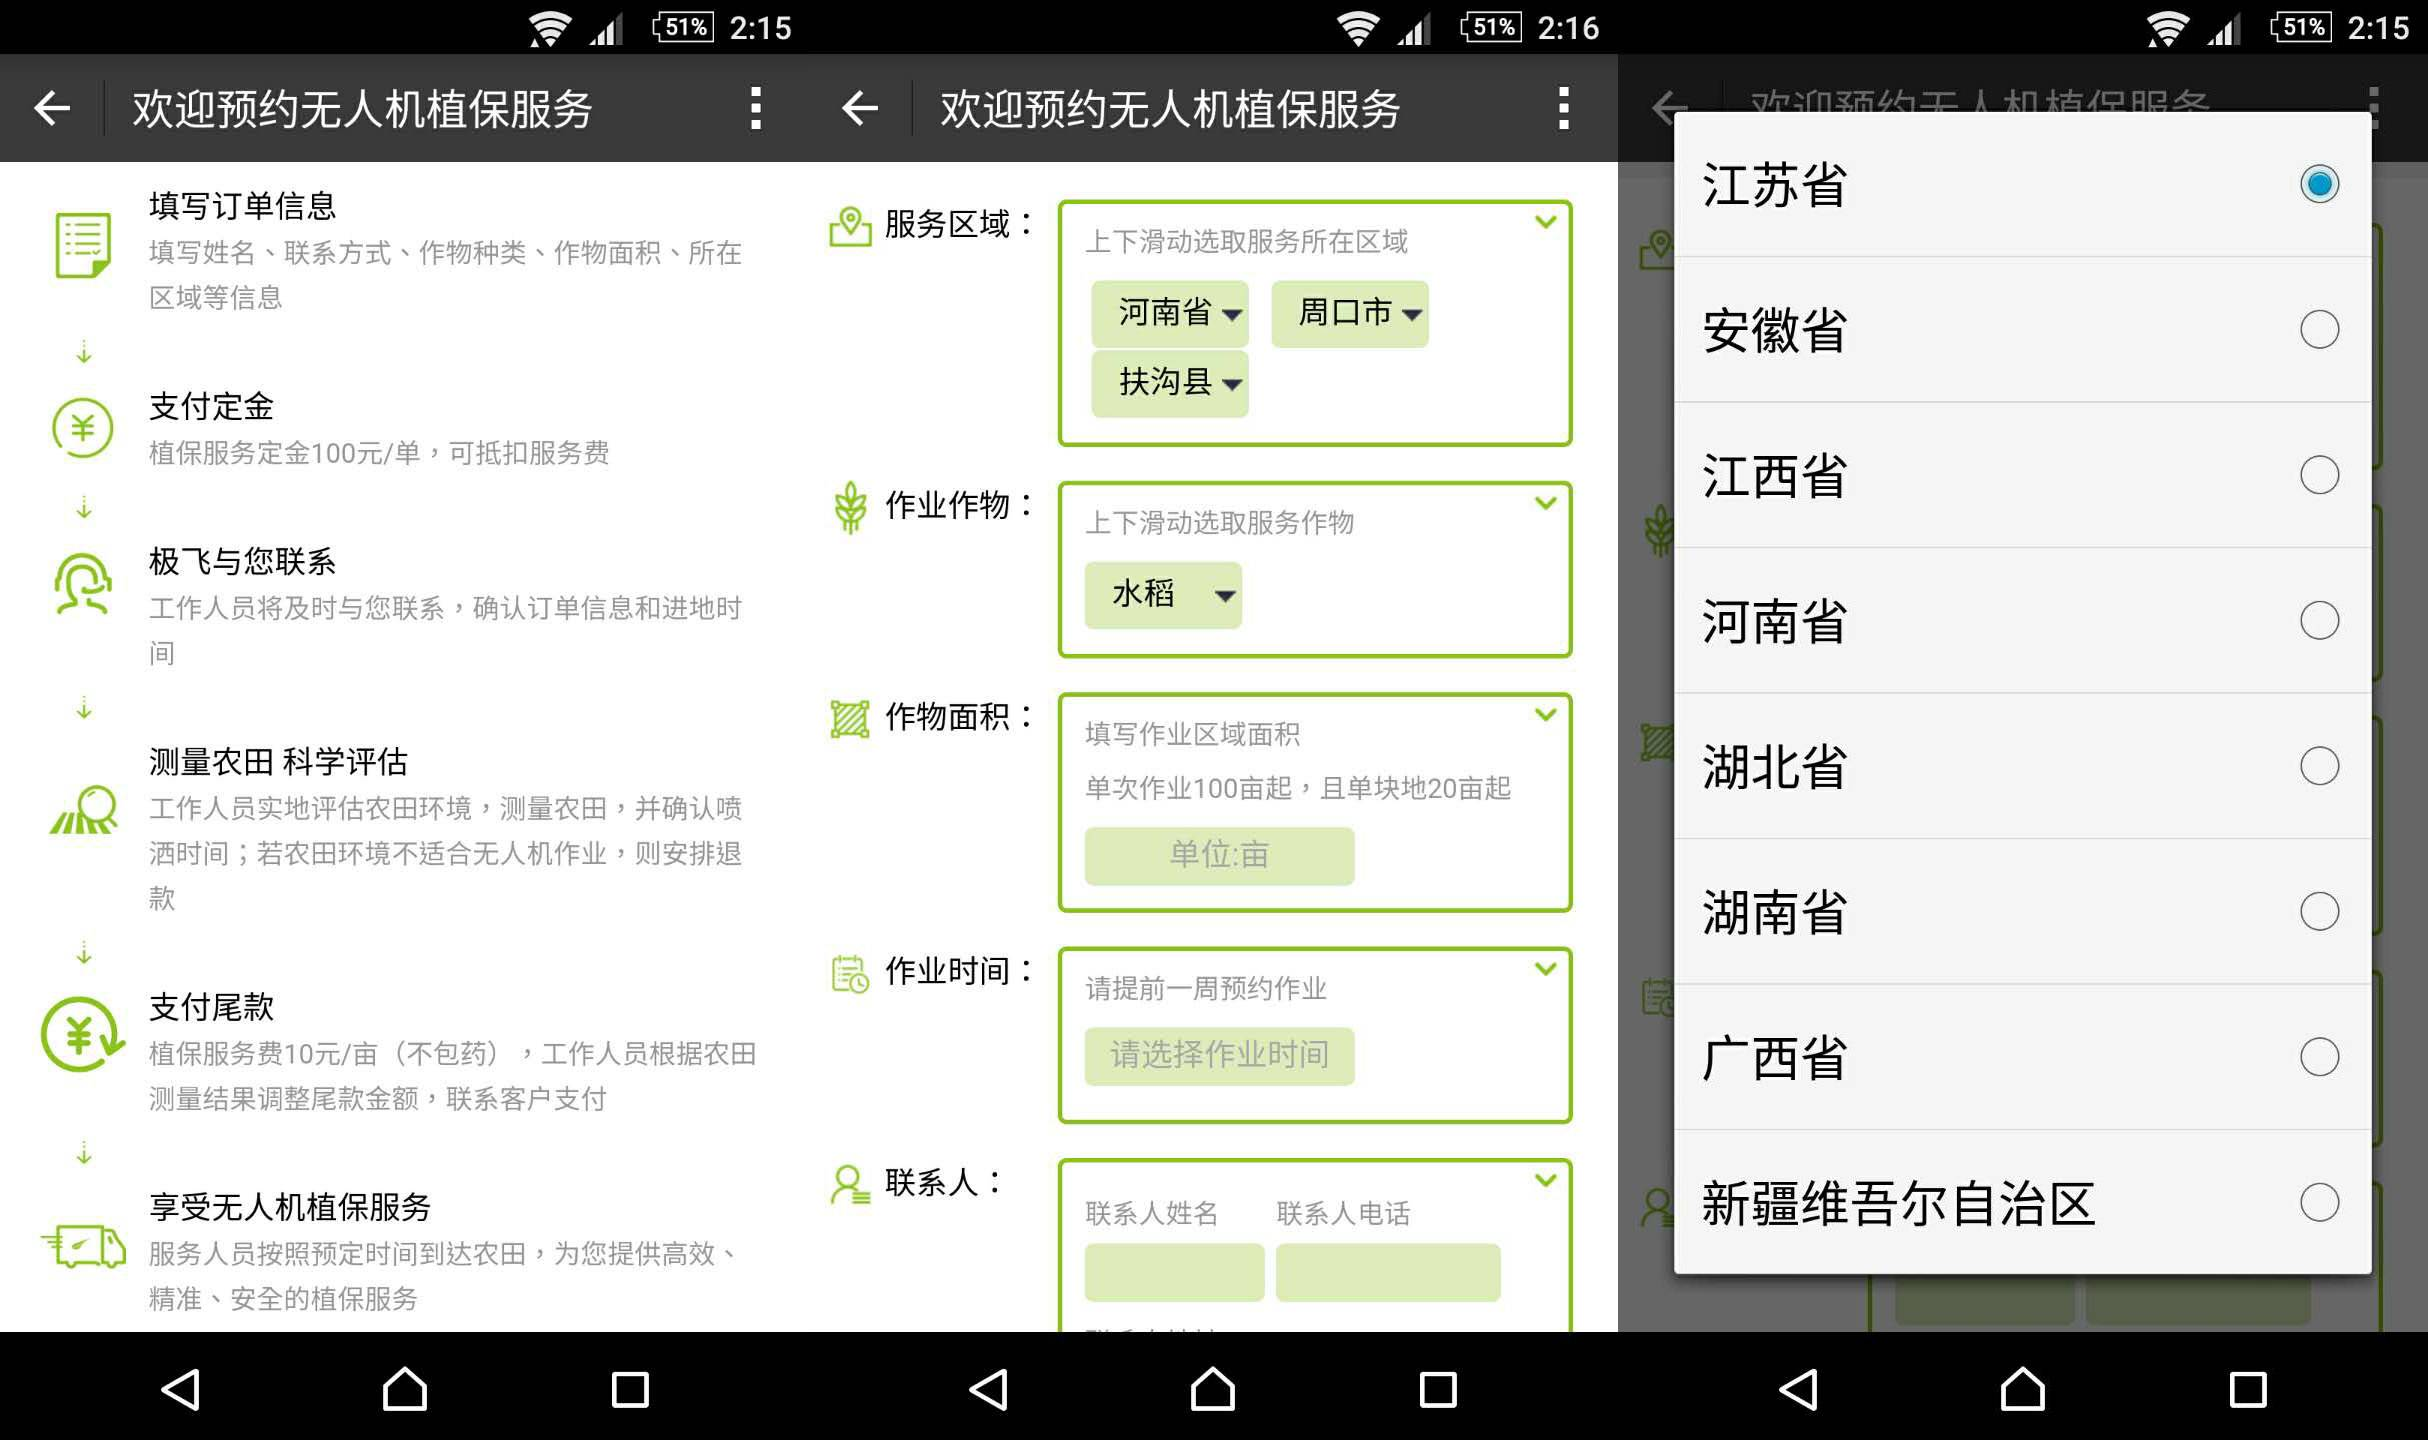 xaircraft alipay application